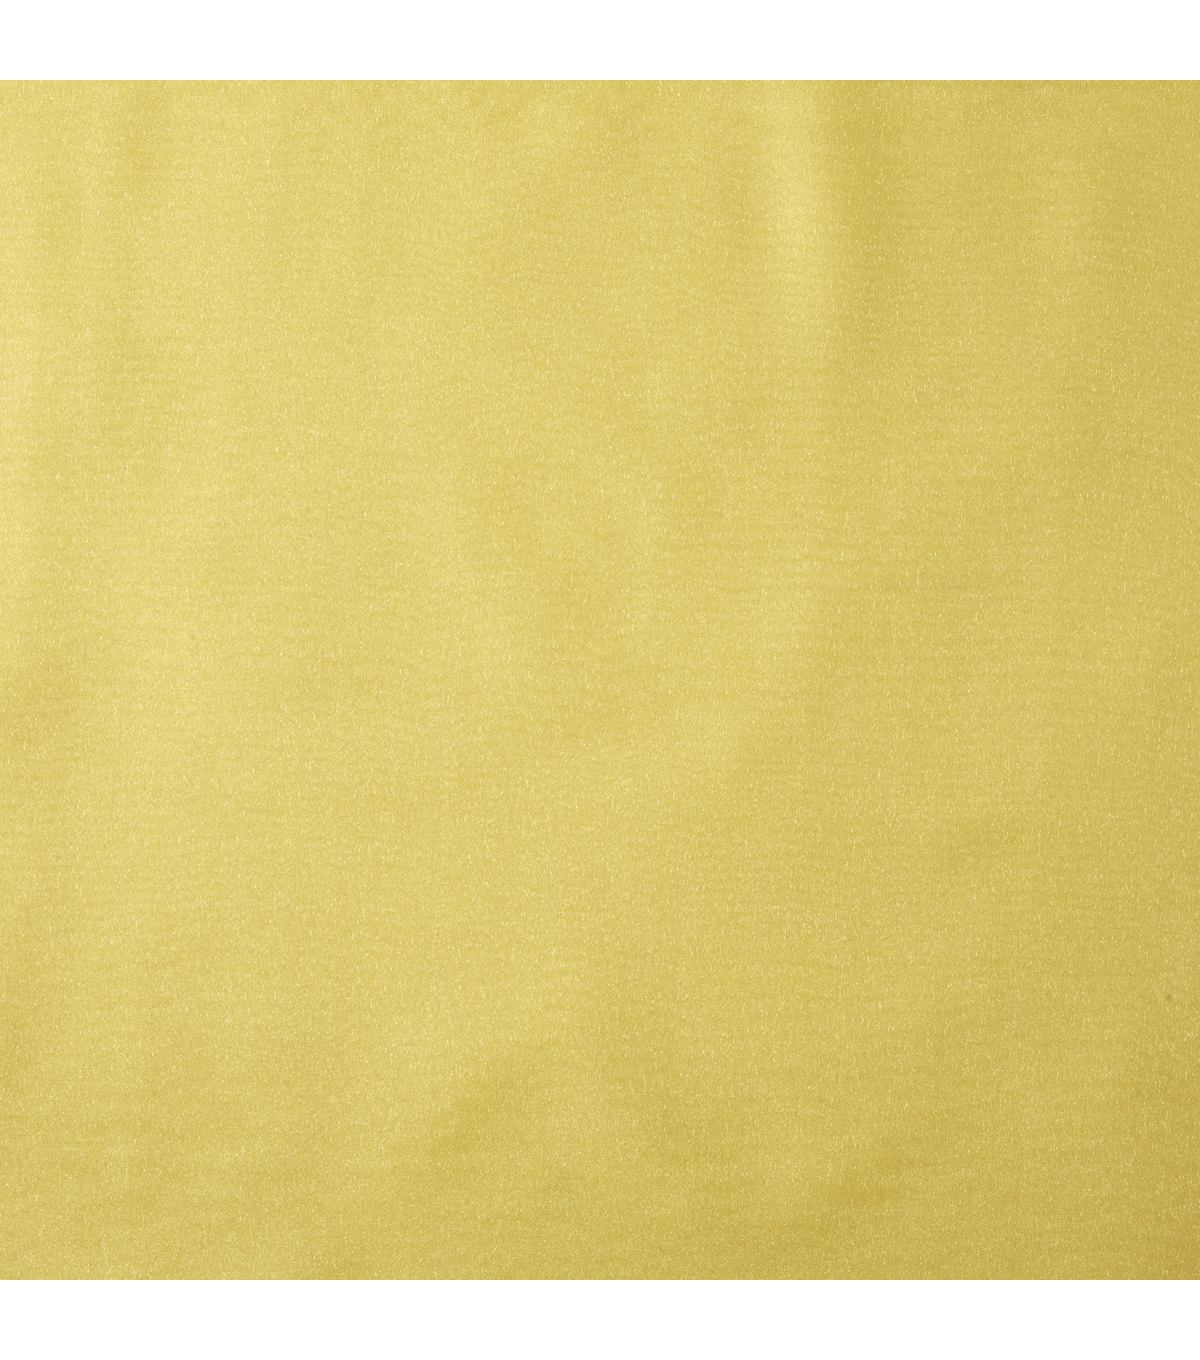 Casa Collection Solid Crepon Sheer Fabric, Yellow